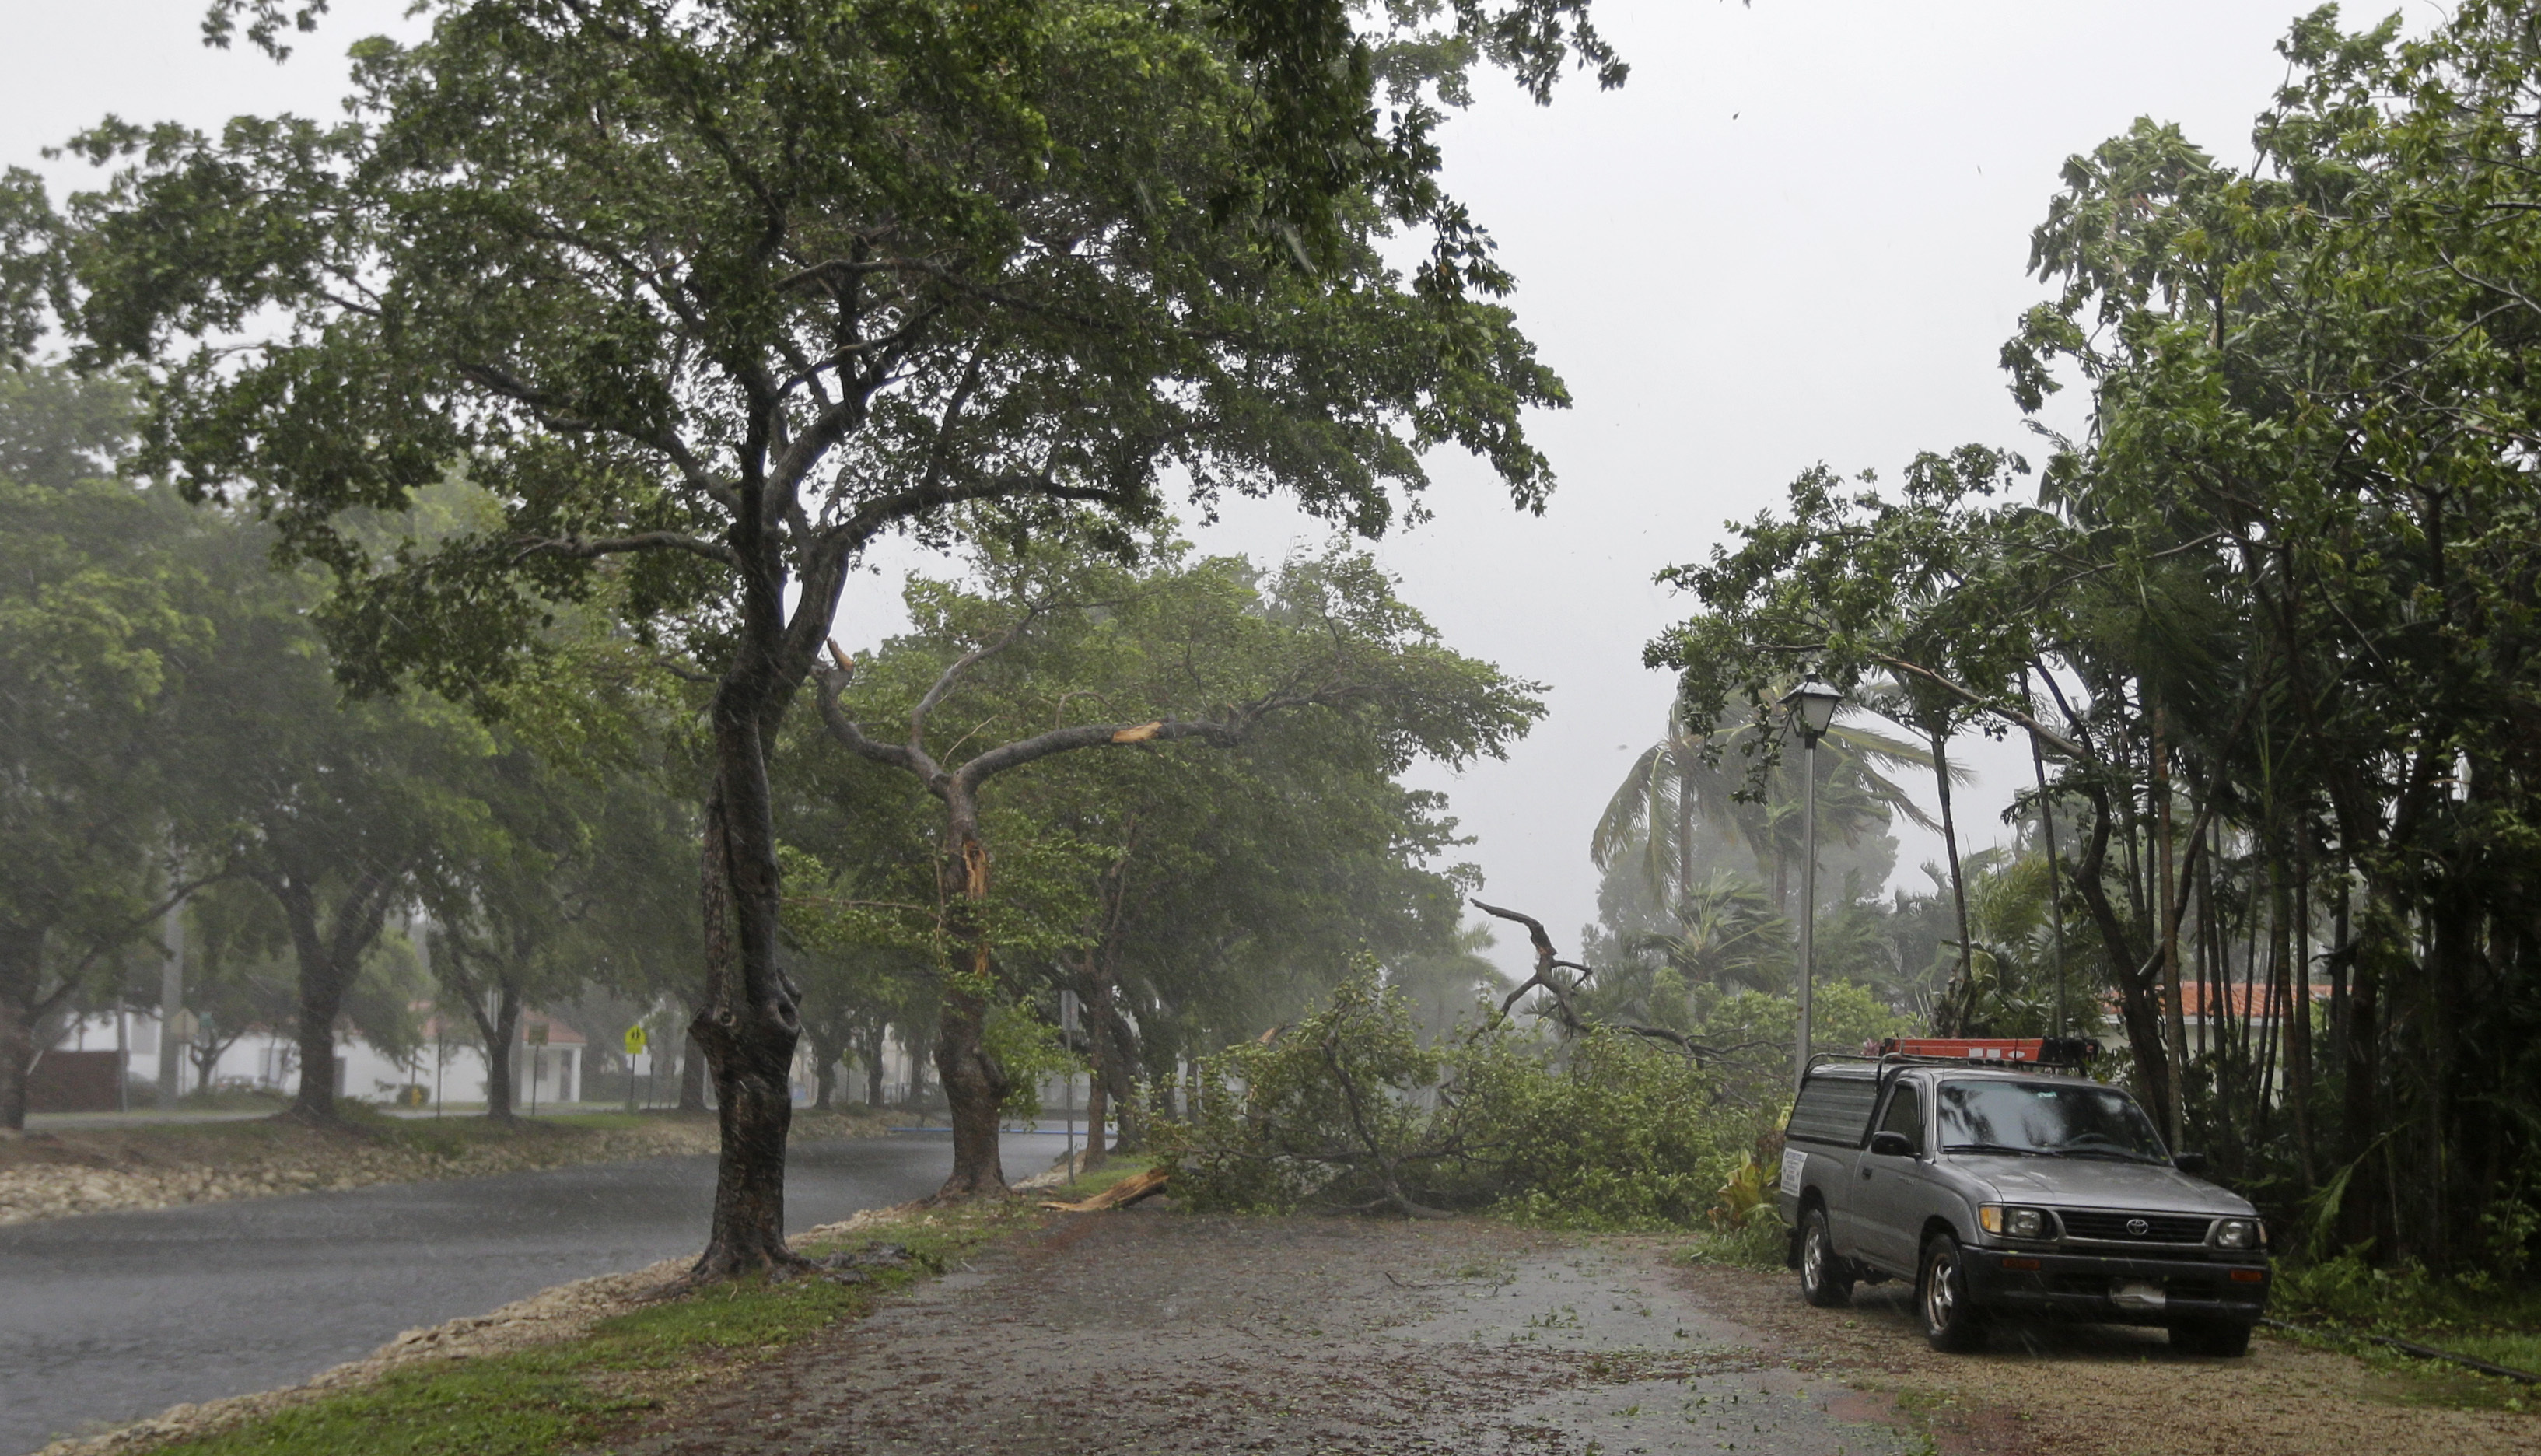 "<div class=""meta image-caption""><div class=""origin-logo origin-image none""><span>none</span></div><span class=""caption-text"">A fallen tree blocks a street in Miami Springs, Fla., on Sunday, Sept. 10, 2017. (Alan Diaz/AP Photo)</span></div>"